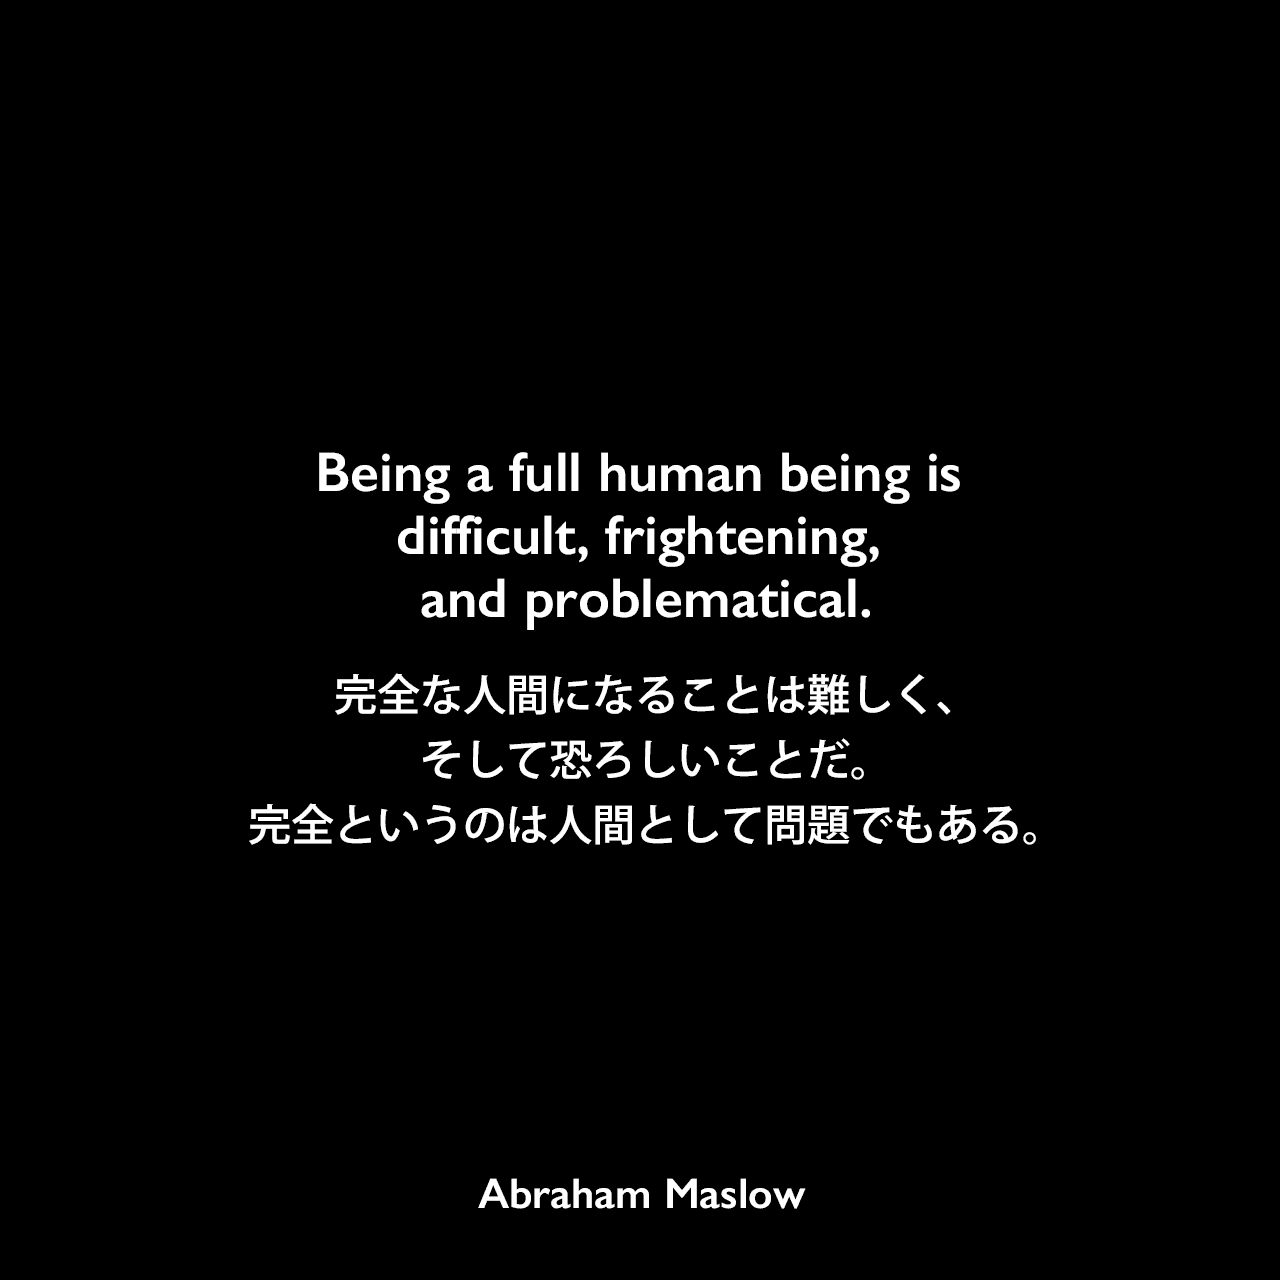 Being a full human being is difficult, frightening, and problematical.完全な人間になることは難しく、そして恐ろしいことだ。完全というのは人間として問題でもある。Abraham Maslow